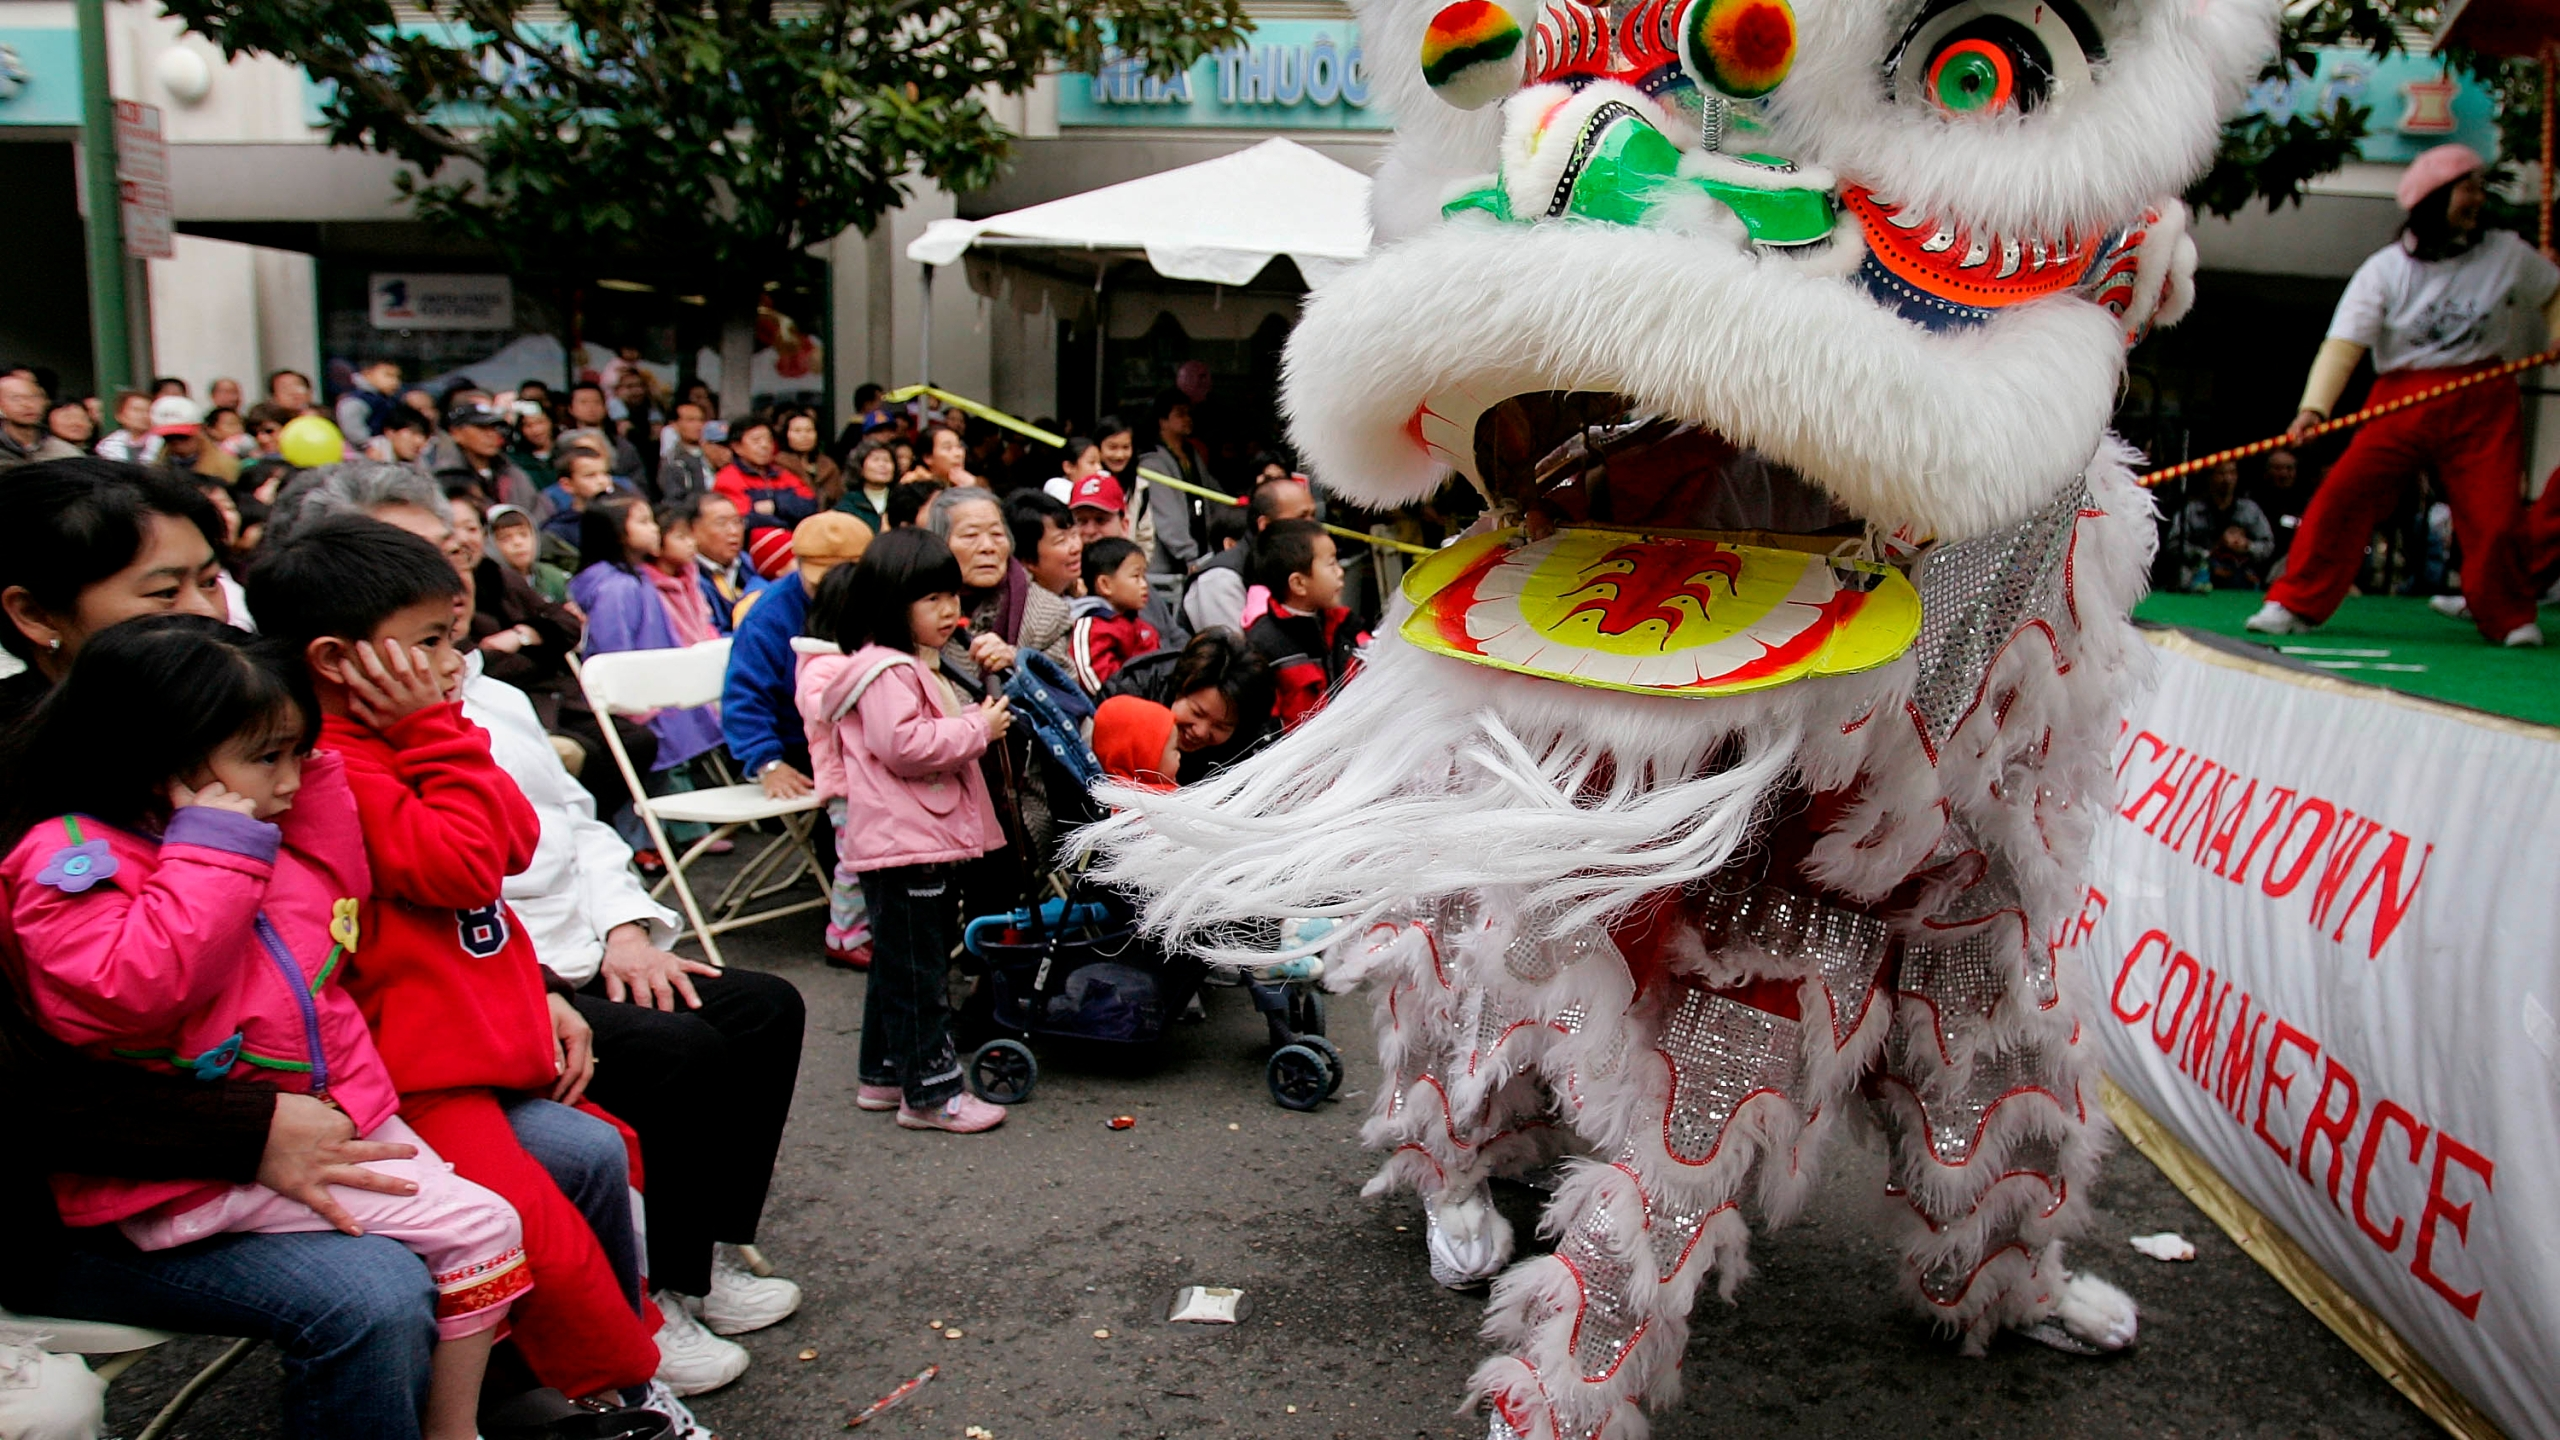 In this Jan. 21, 2006, file photo, Chinese lion dancers perform in Oakland's Chinatown in Oakland, Calif. According to new data from the U.S. Census Bureau released Thursday, Aug. 12, 2021, California's Asian population grew by 25% in the past decade, making them the fastest growing ethnic group in the nation's most populous state. (AP Photo/Paul Sakuma, File)